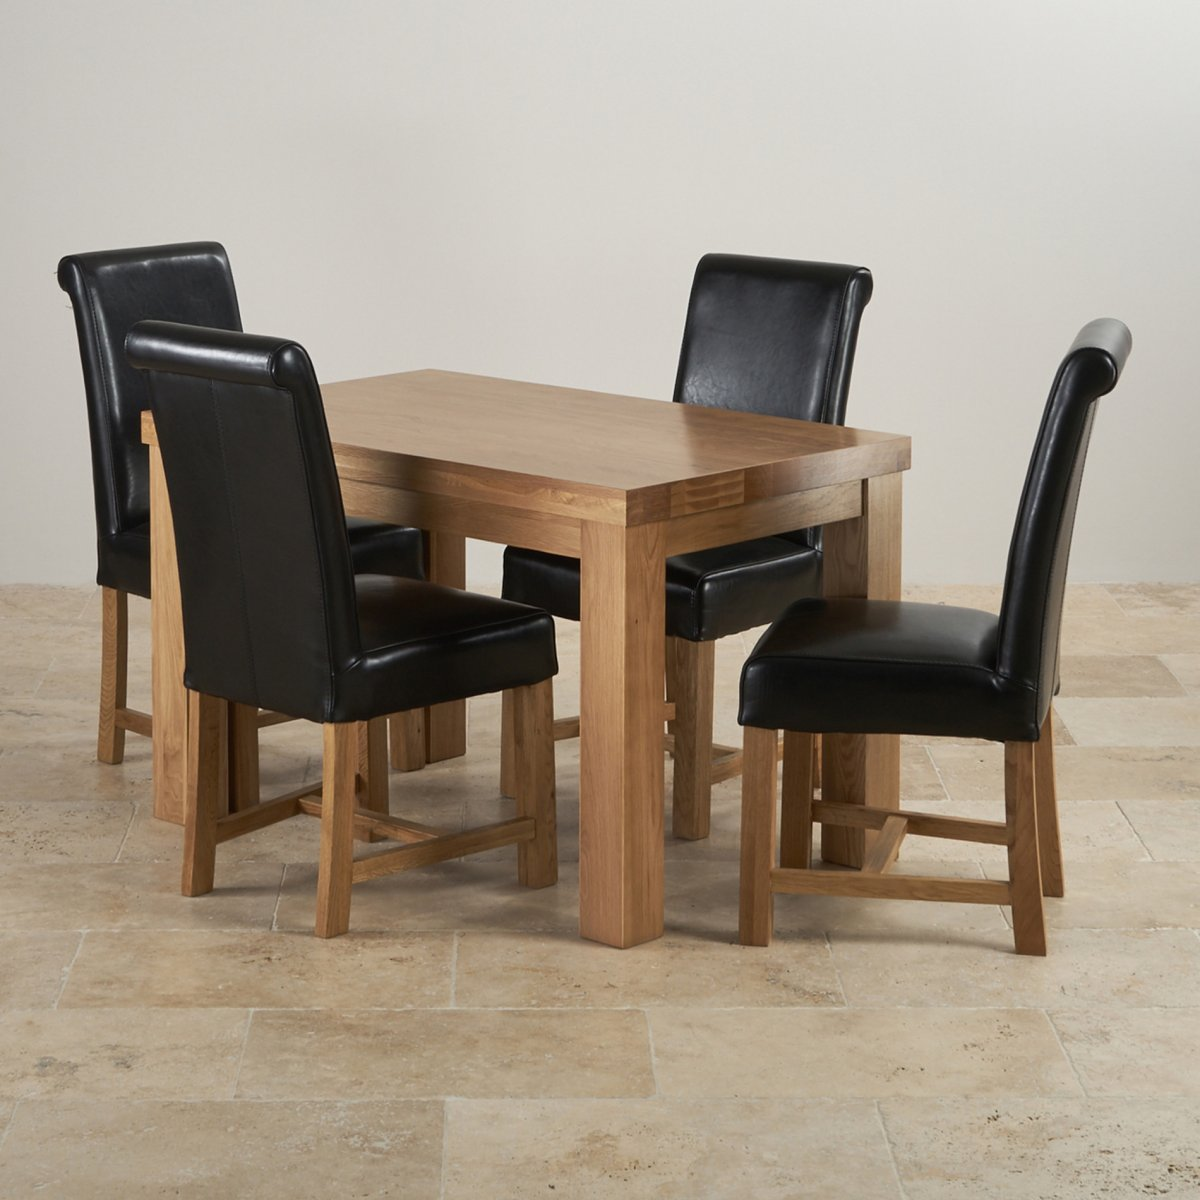 Fresco 4ft Solid Oak Dining Table 4 Black Leather Braced Chairs